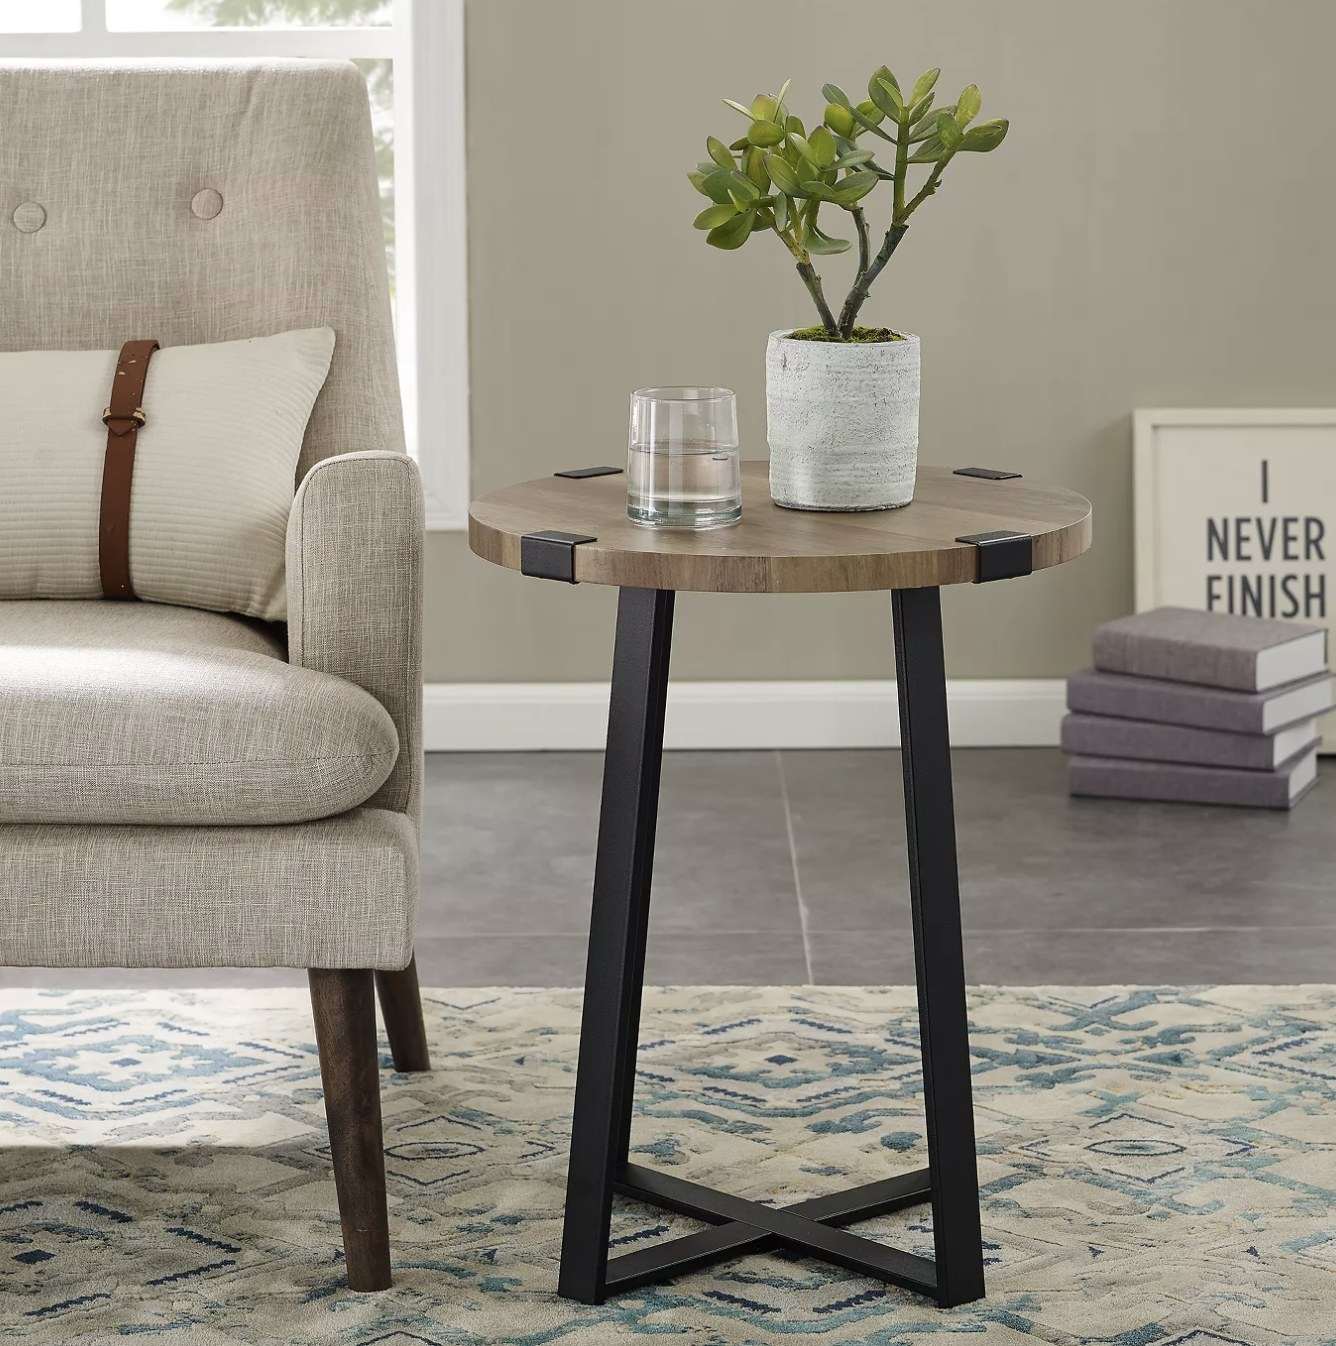 An industrial style side table with metal legs and a wooden tabletop